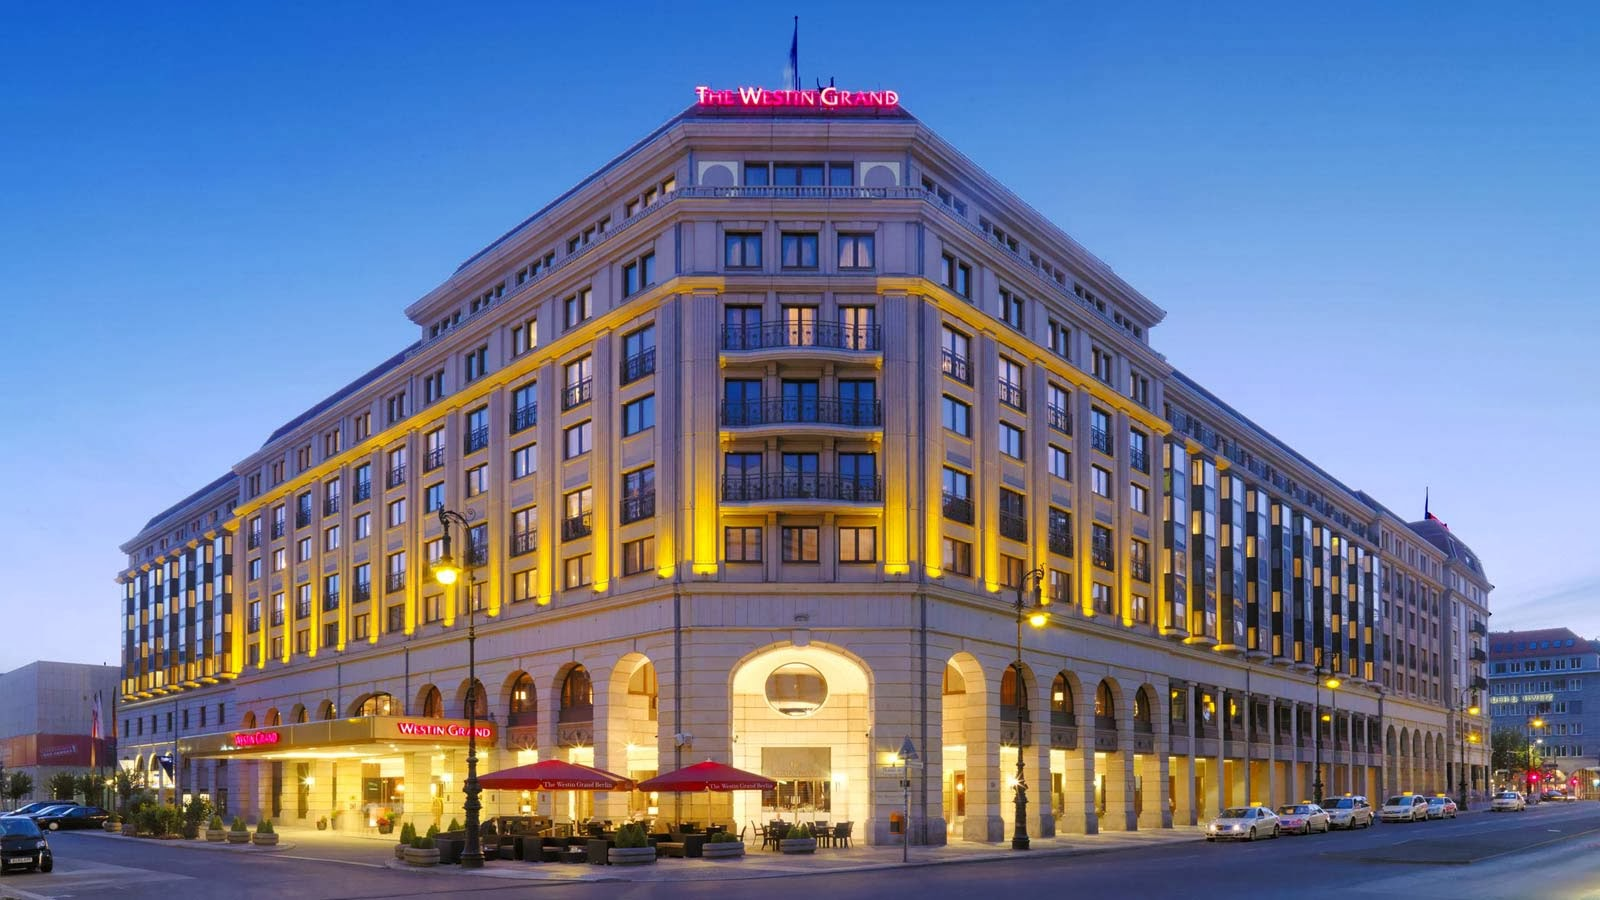 The westin grand hotel berlin luxury 4 2 hotel luxury for Top hotels in berlin